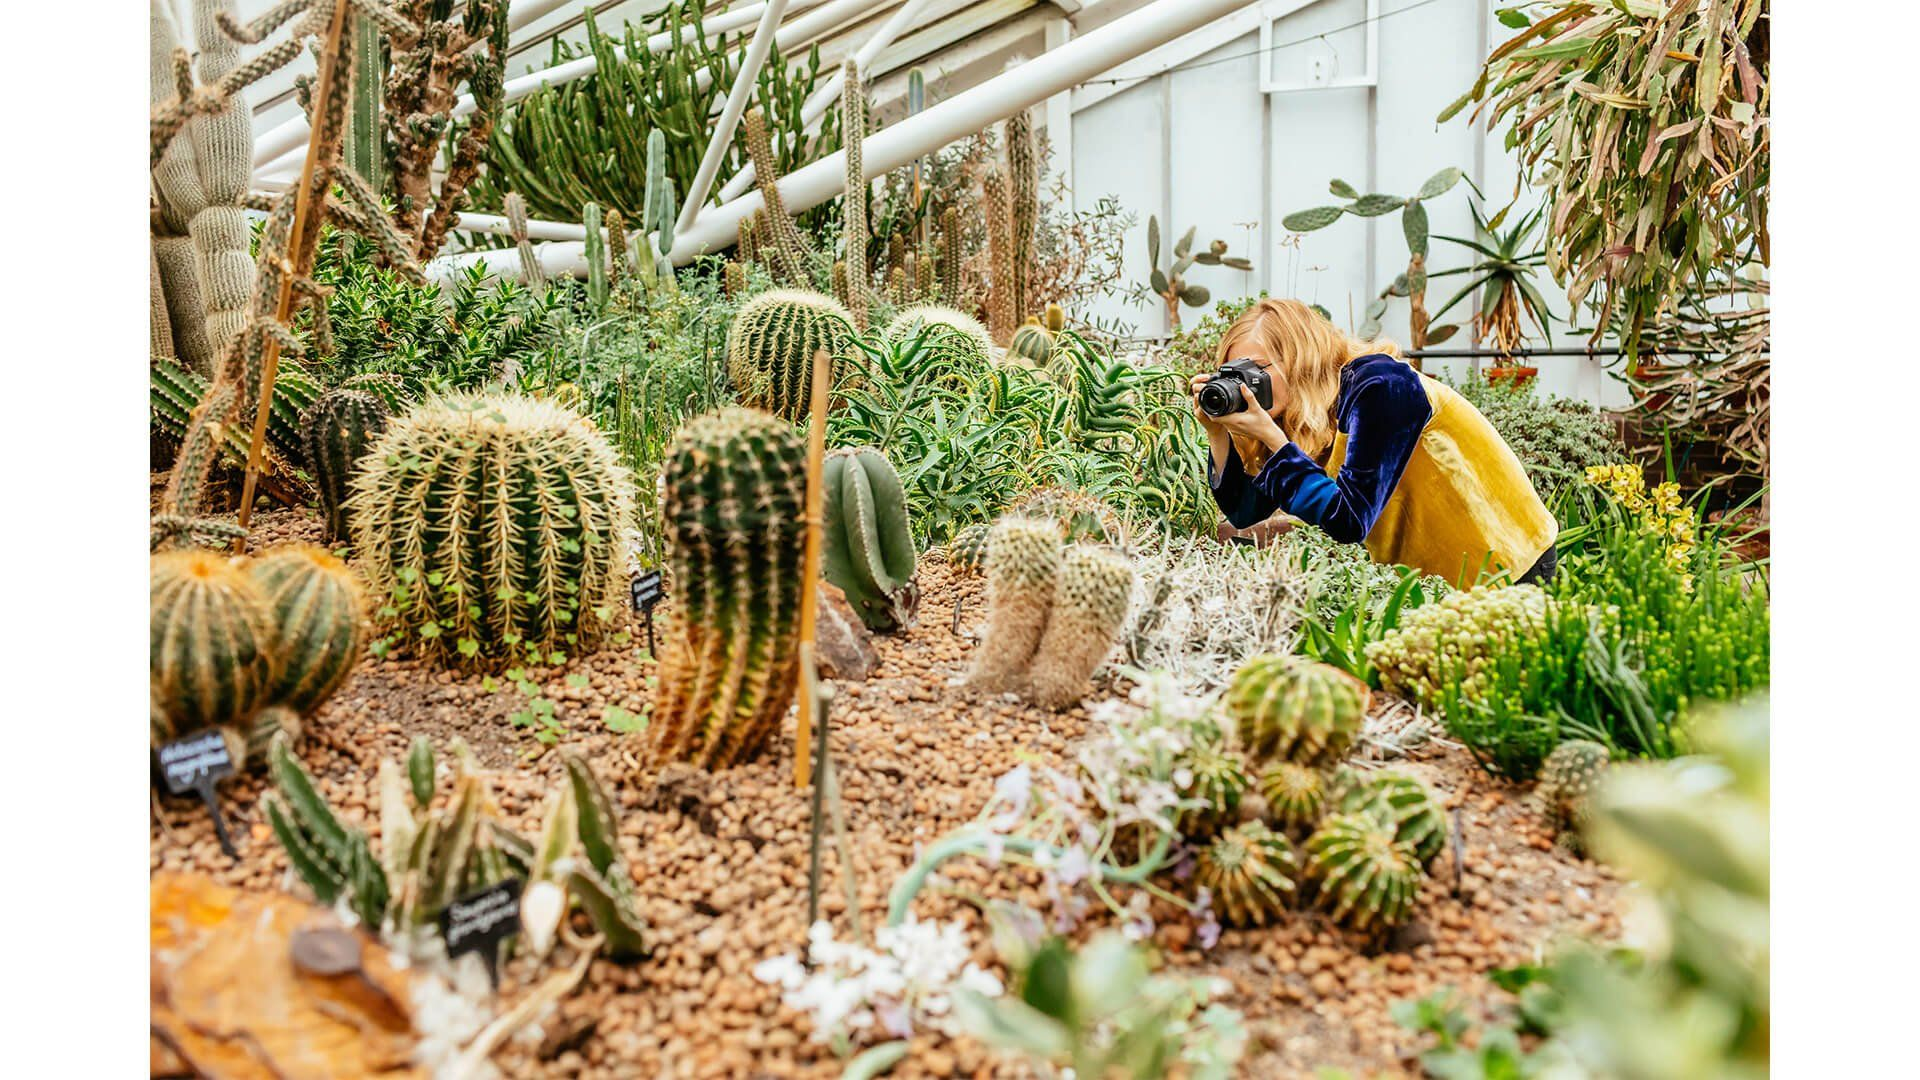 Artist Hattie Newman photographing botanics as inspiration for her work